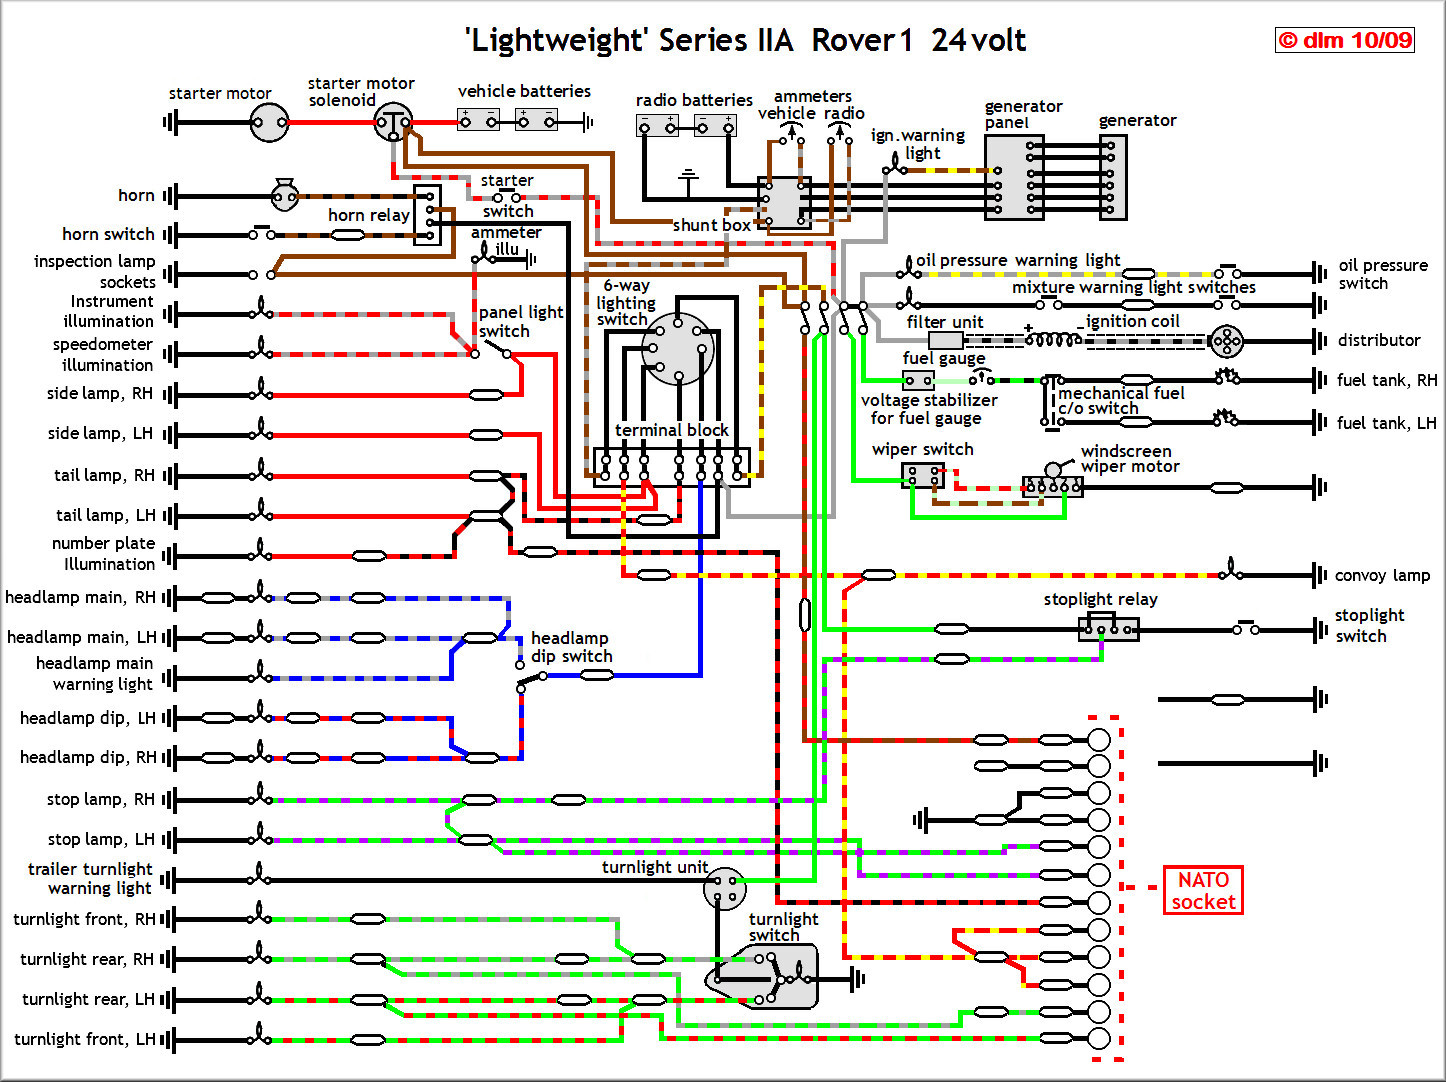 Fuse Block Circuit Diagram Wiring Library 2002 Jaguar X Type Panel Land Rover Discovery Sample 2003 Box